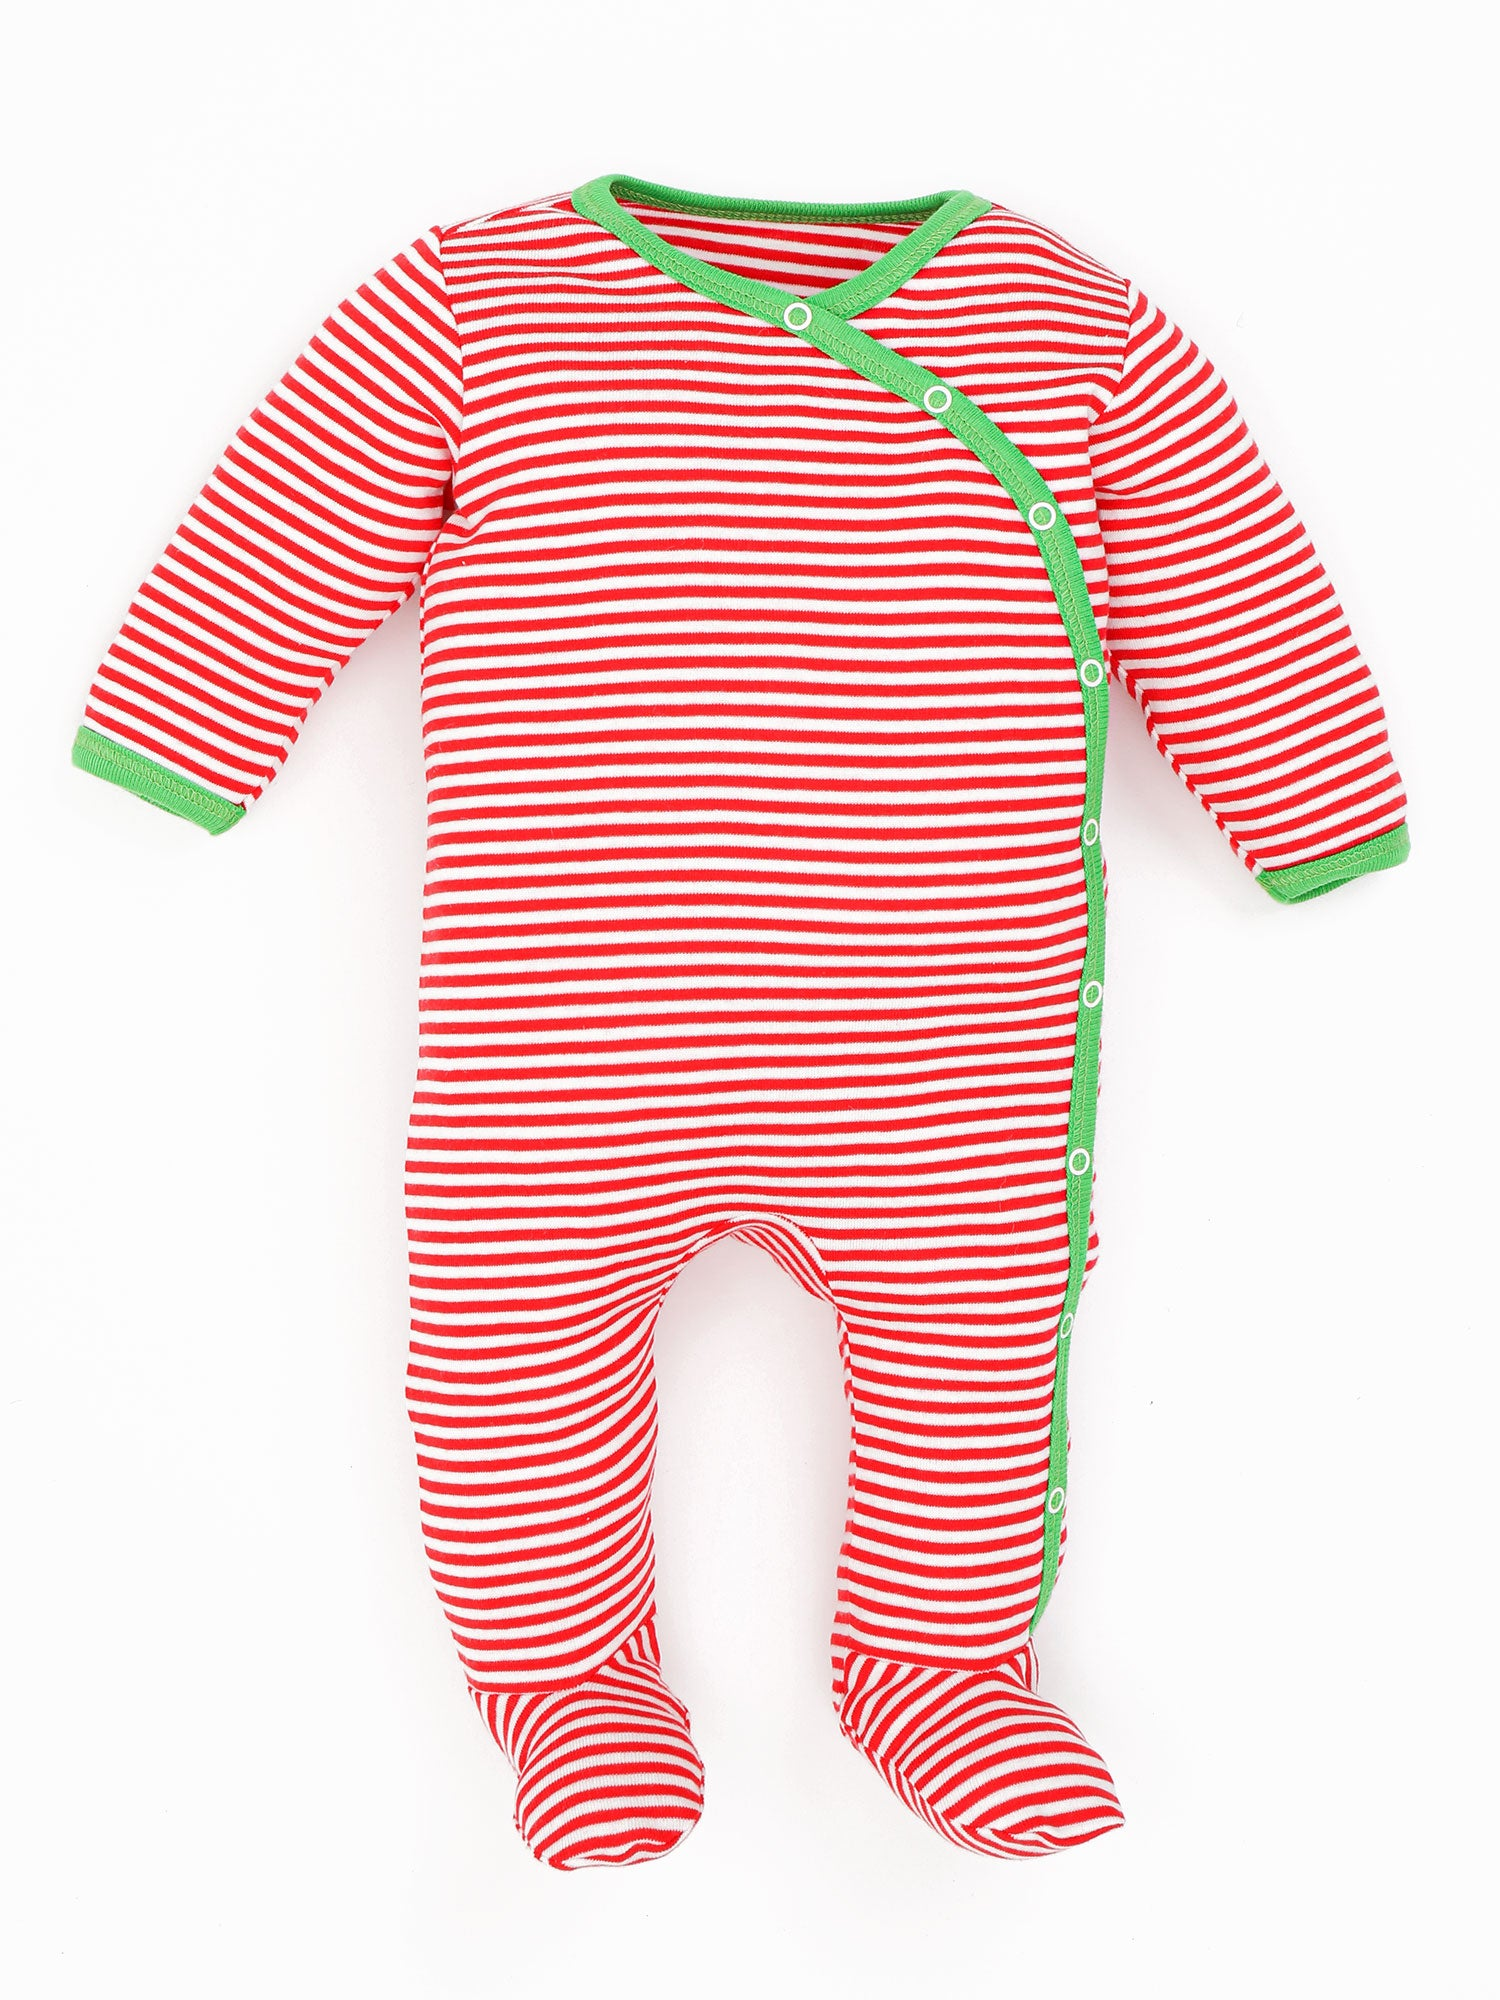 Side Snap Footie - Candy Cane Holiday Stripe